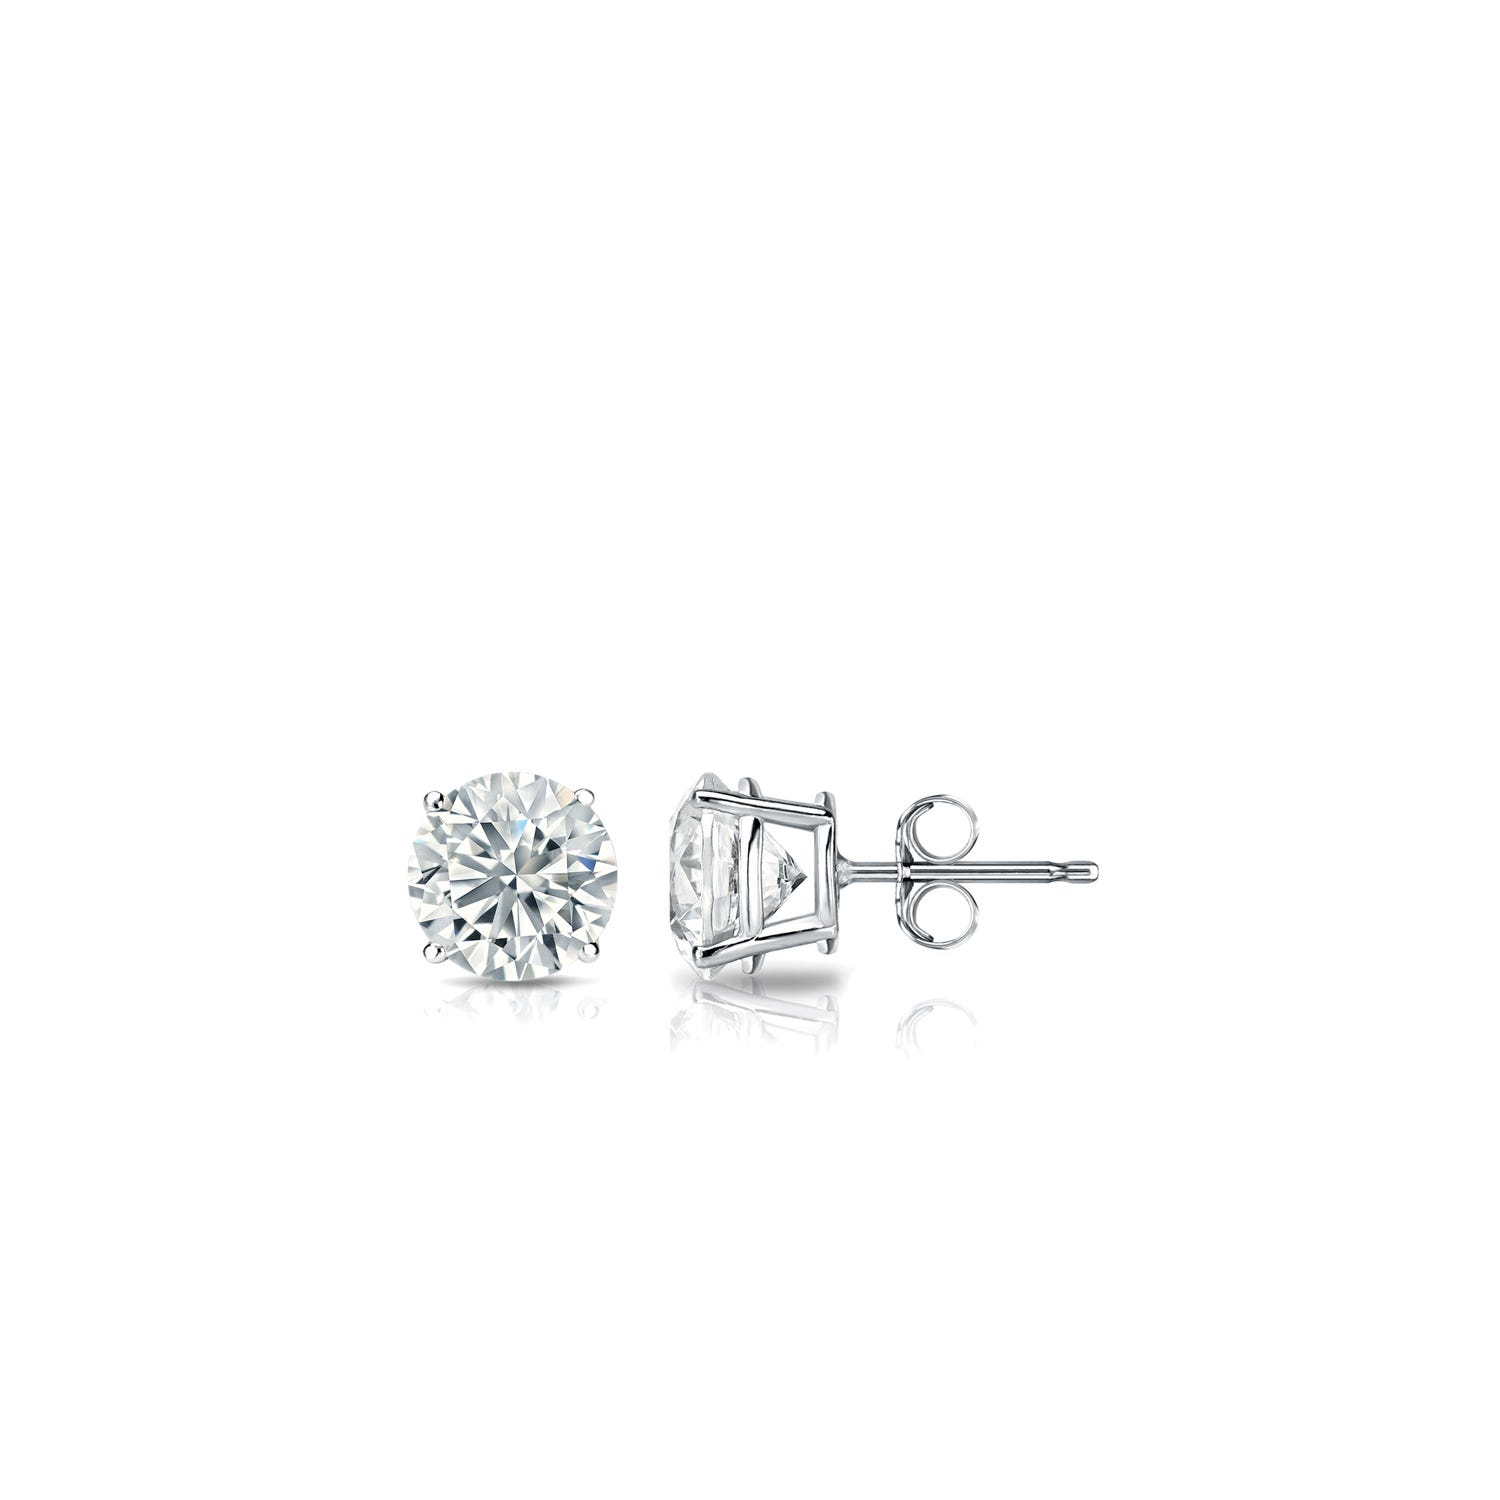 Diamond 1/10ctw. Round Solitaire Stud Earrings (I-J, SI1) 14k White Gold